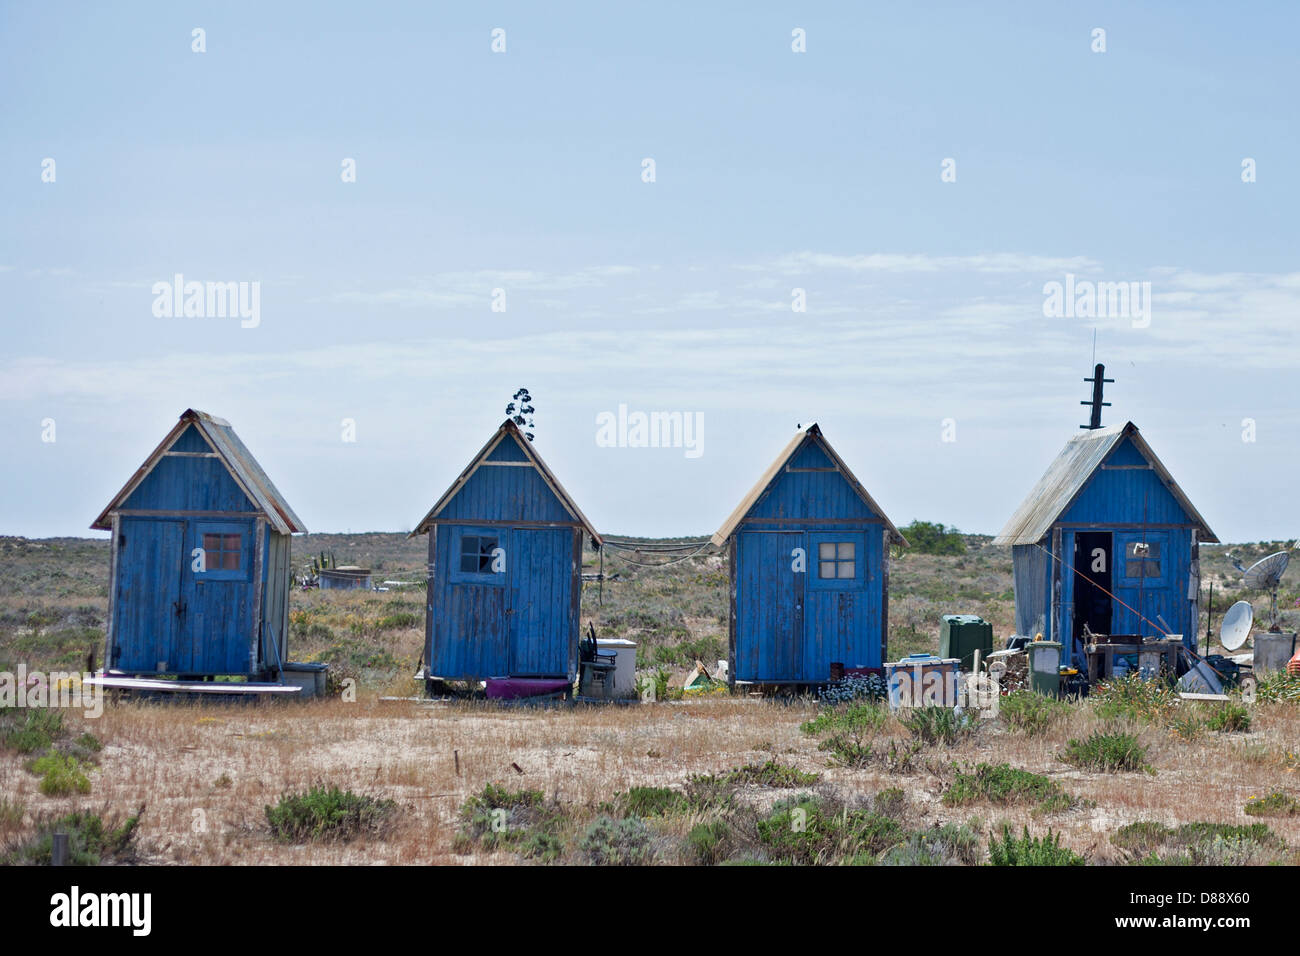 Blue painted beach huts on a desert island in Portugal - Stock Image